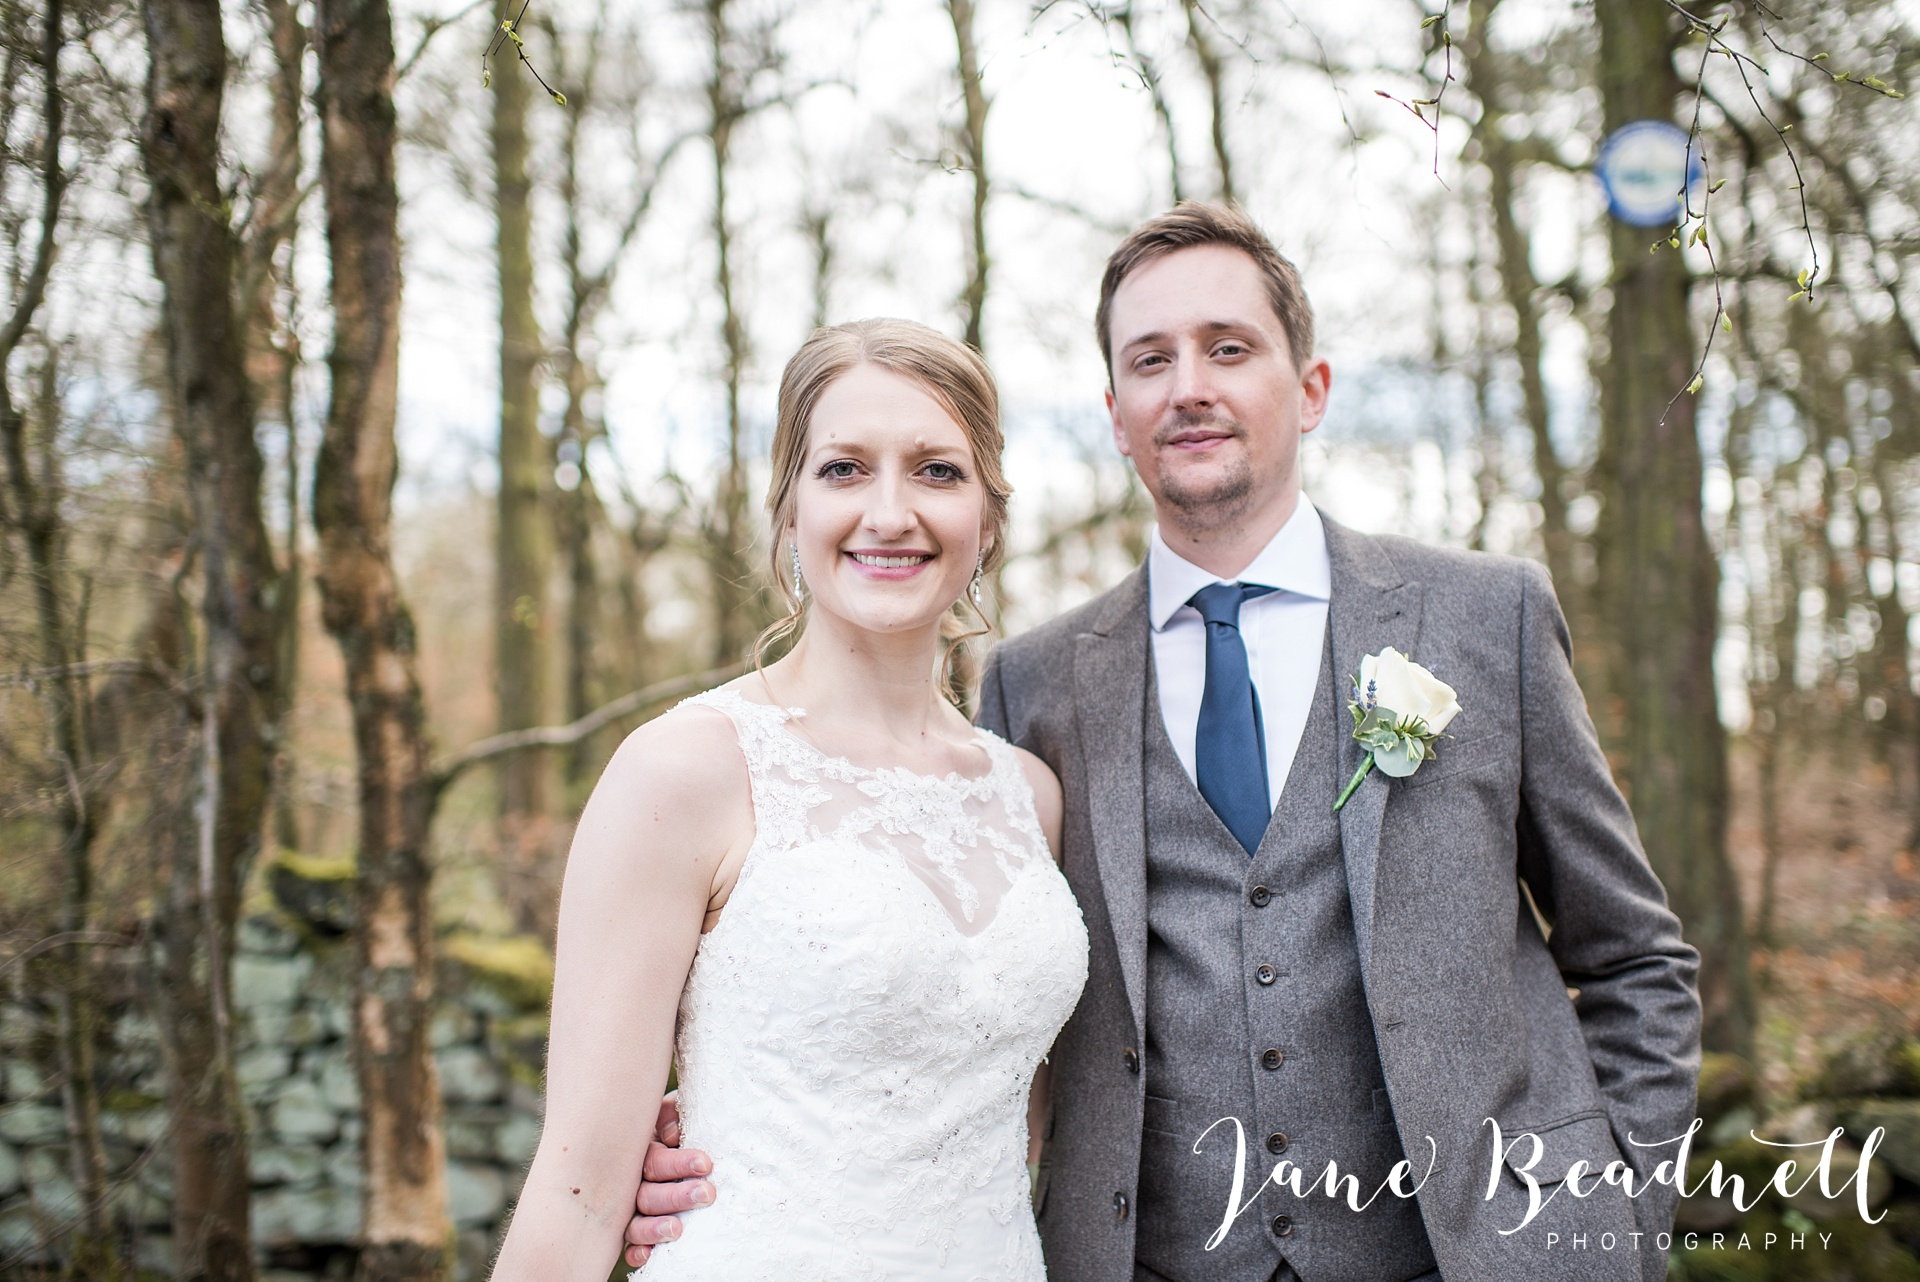 Otley Chevin Lodge wedding photography by Jane Beadnell Photography Leeds_0118